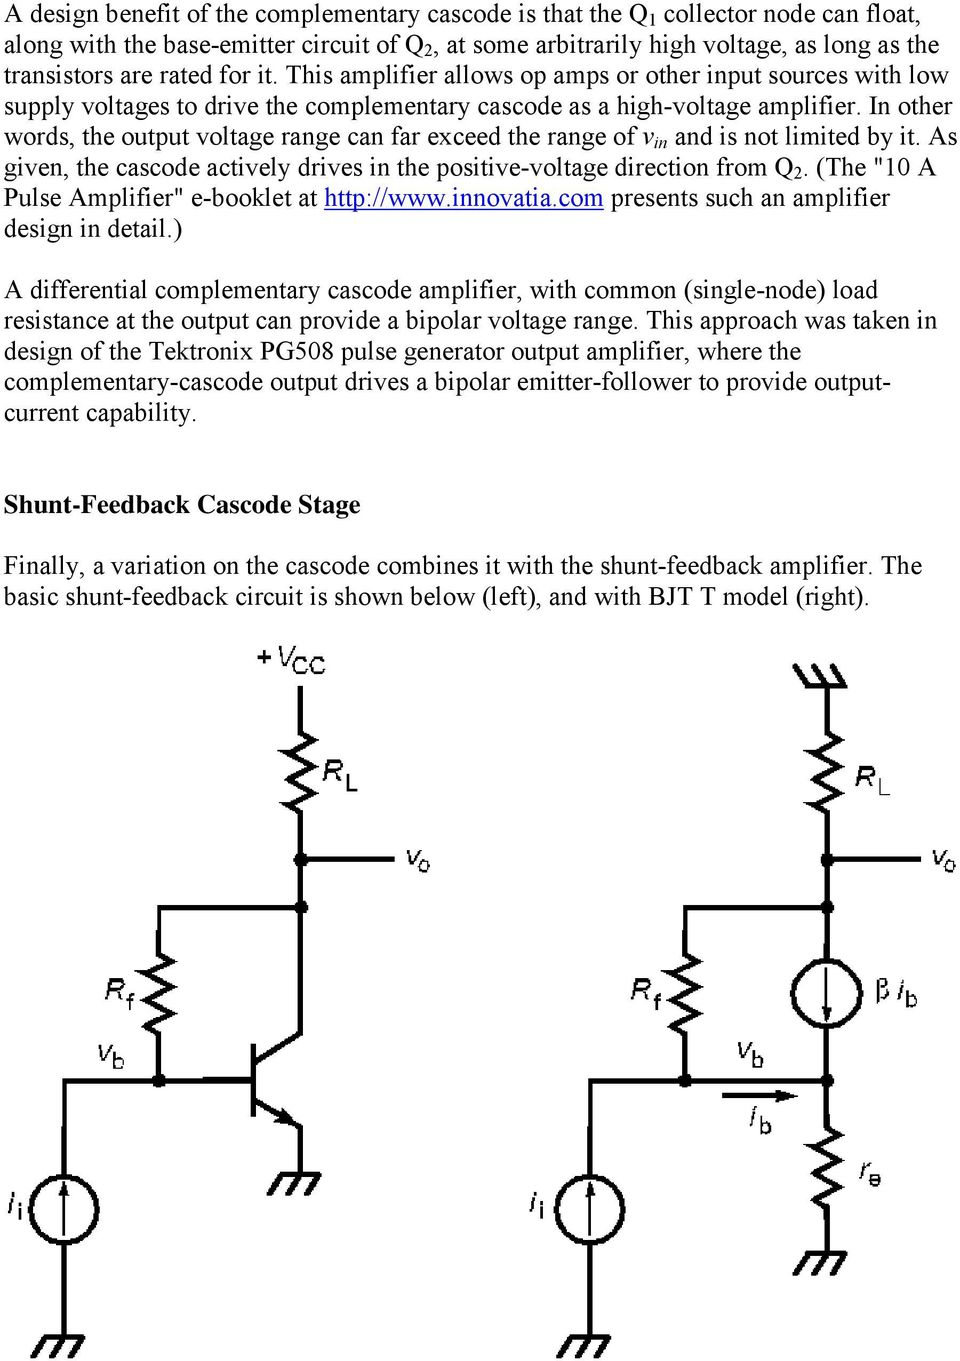 The Basic Cascode Amplifier Consists Of An Input Common Emitter Ce Follower Circuit In Other Words Output Voltage Range Can Far Exceed V